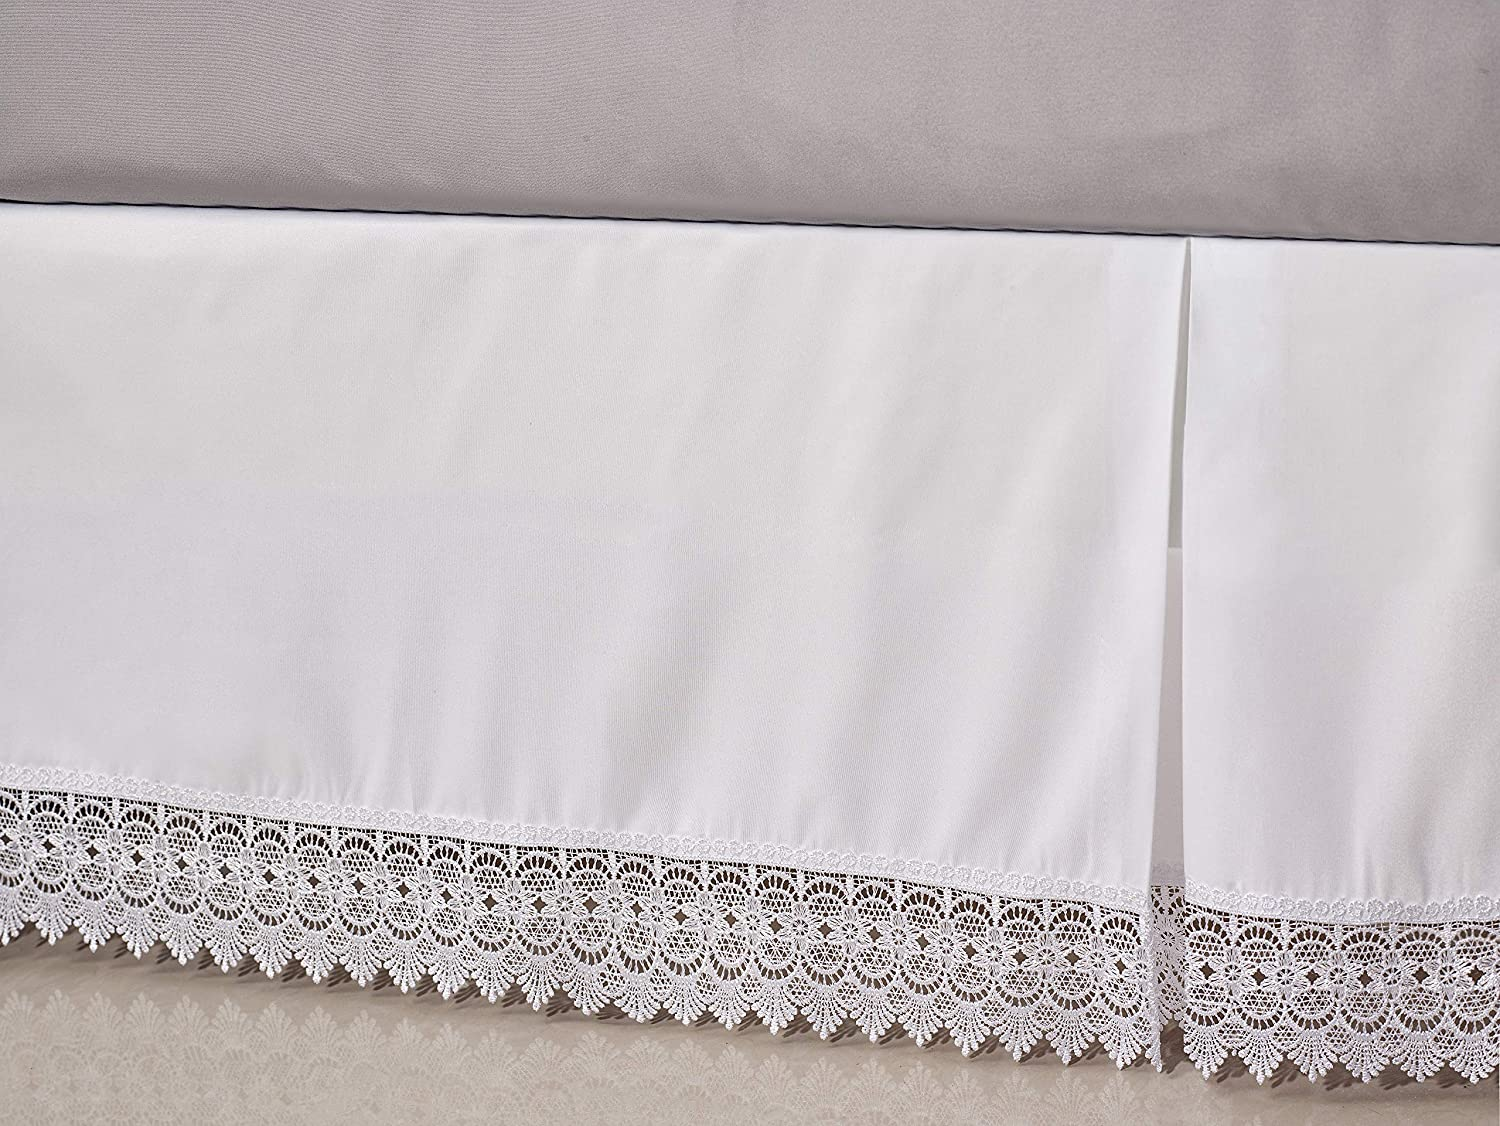 Elegant Comfort  Silky-Soft Luxury Lace Fringe Dust Ruffle//Bed Skirt Microfiber Platform Wrinkle and Fade Resistant with 15inch Drop Queen White Elegant Comfort TM Lace-BedSkirt-Queen-White